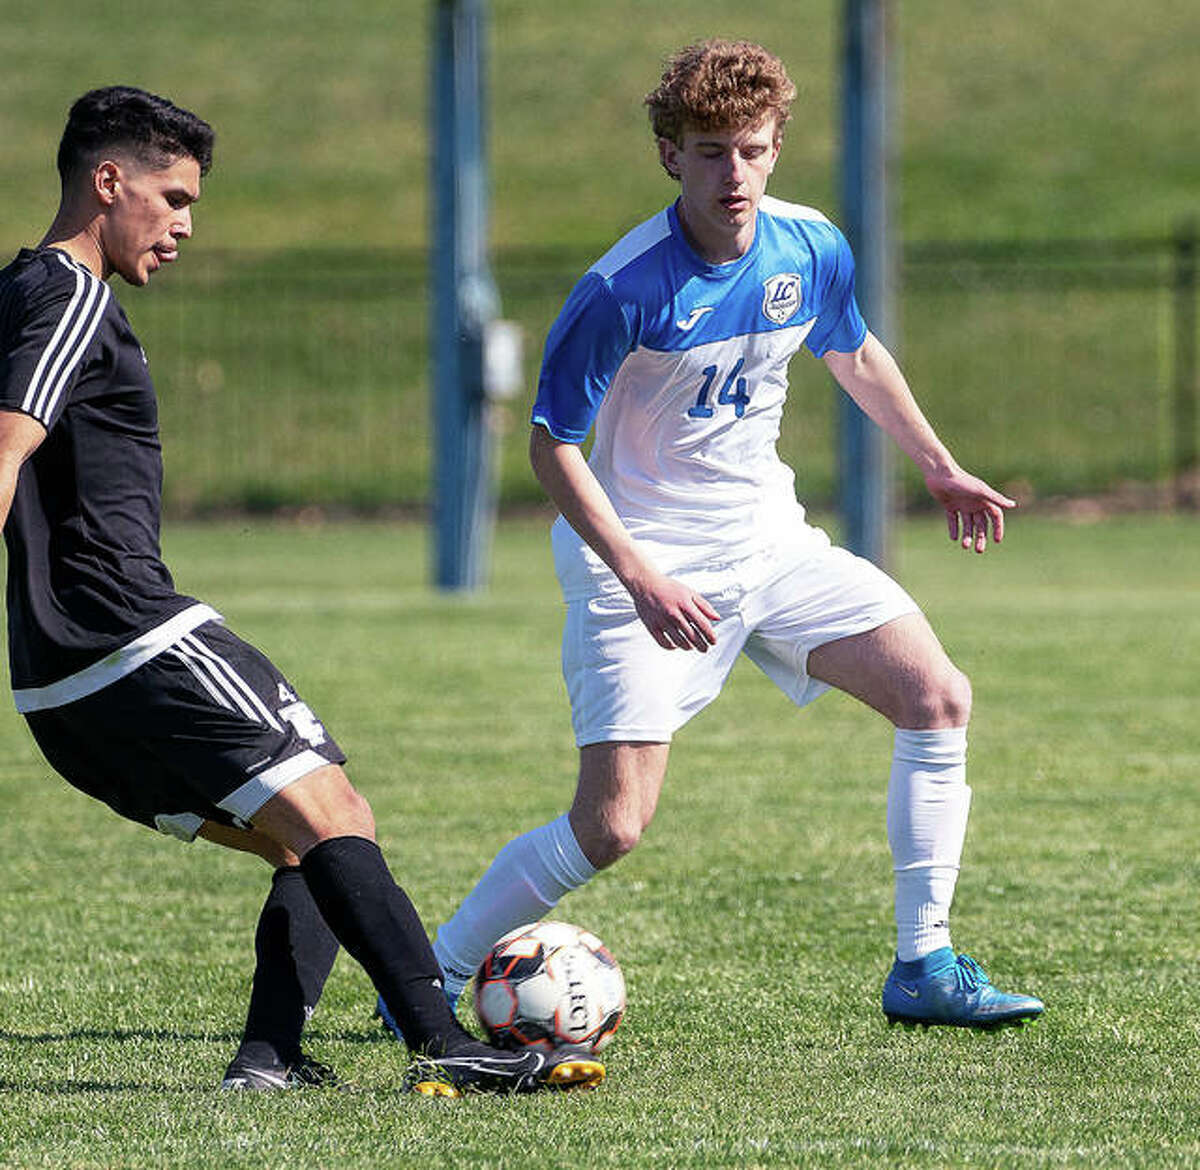 LCCC's Brayden Decker (14), a sophomore from Alton, scored a first-half goal in his team's 2-0 victory over College of Lake County Sunday in Grayslake. LCCC, which also won Saturday 6-1 over Oakton Community College, is 2-0 on the season.